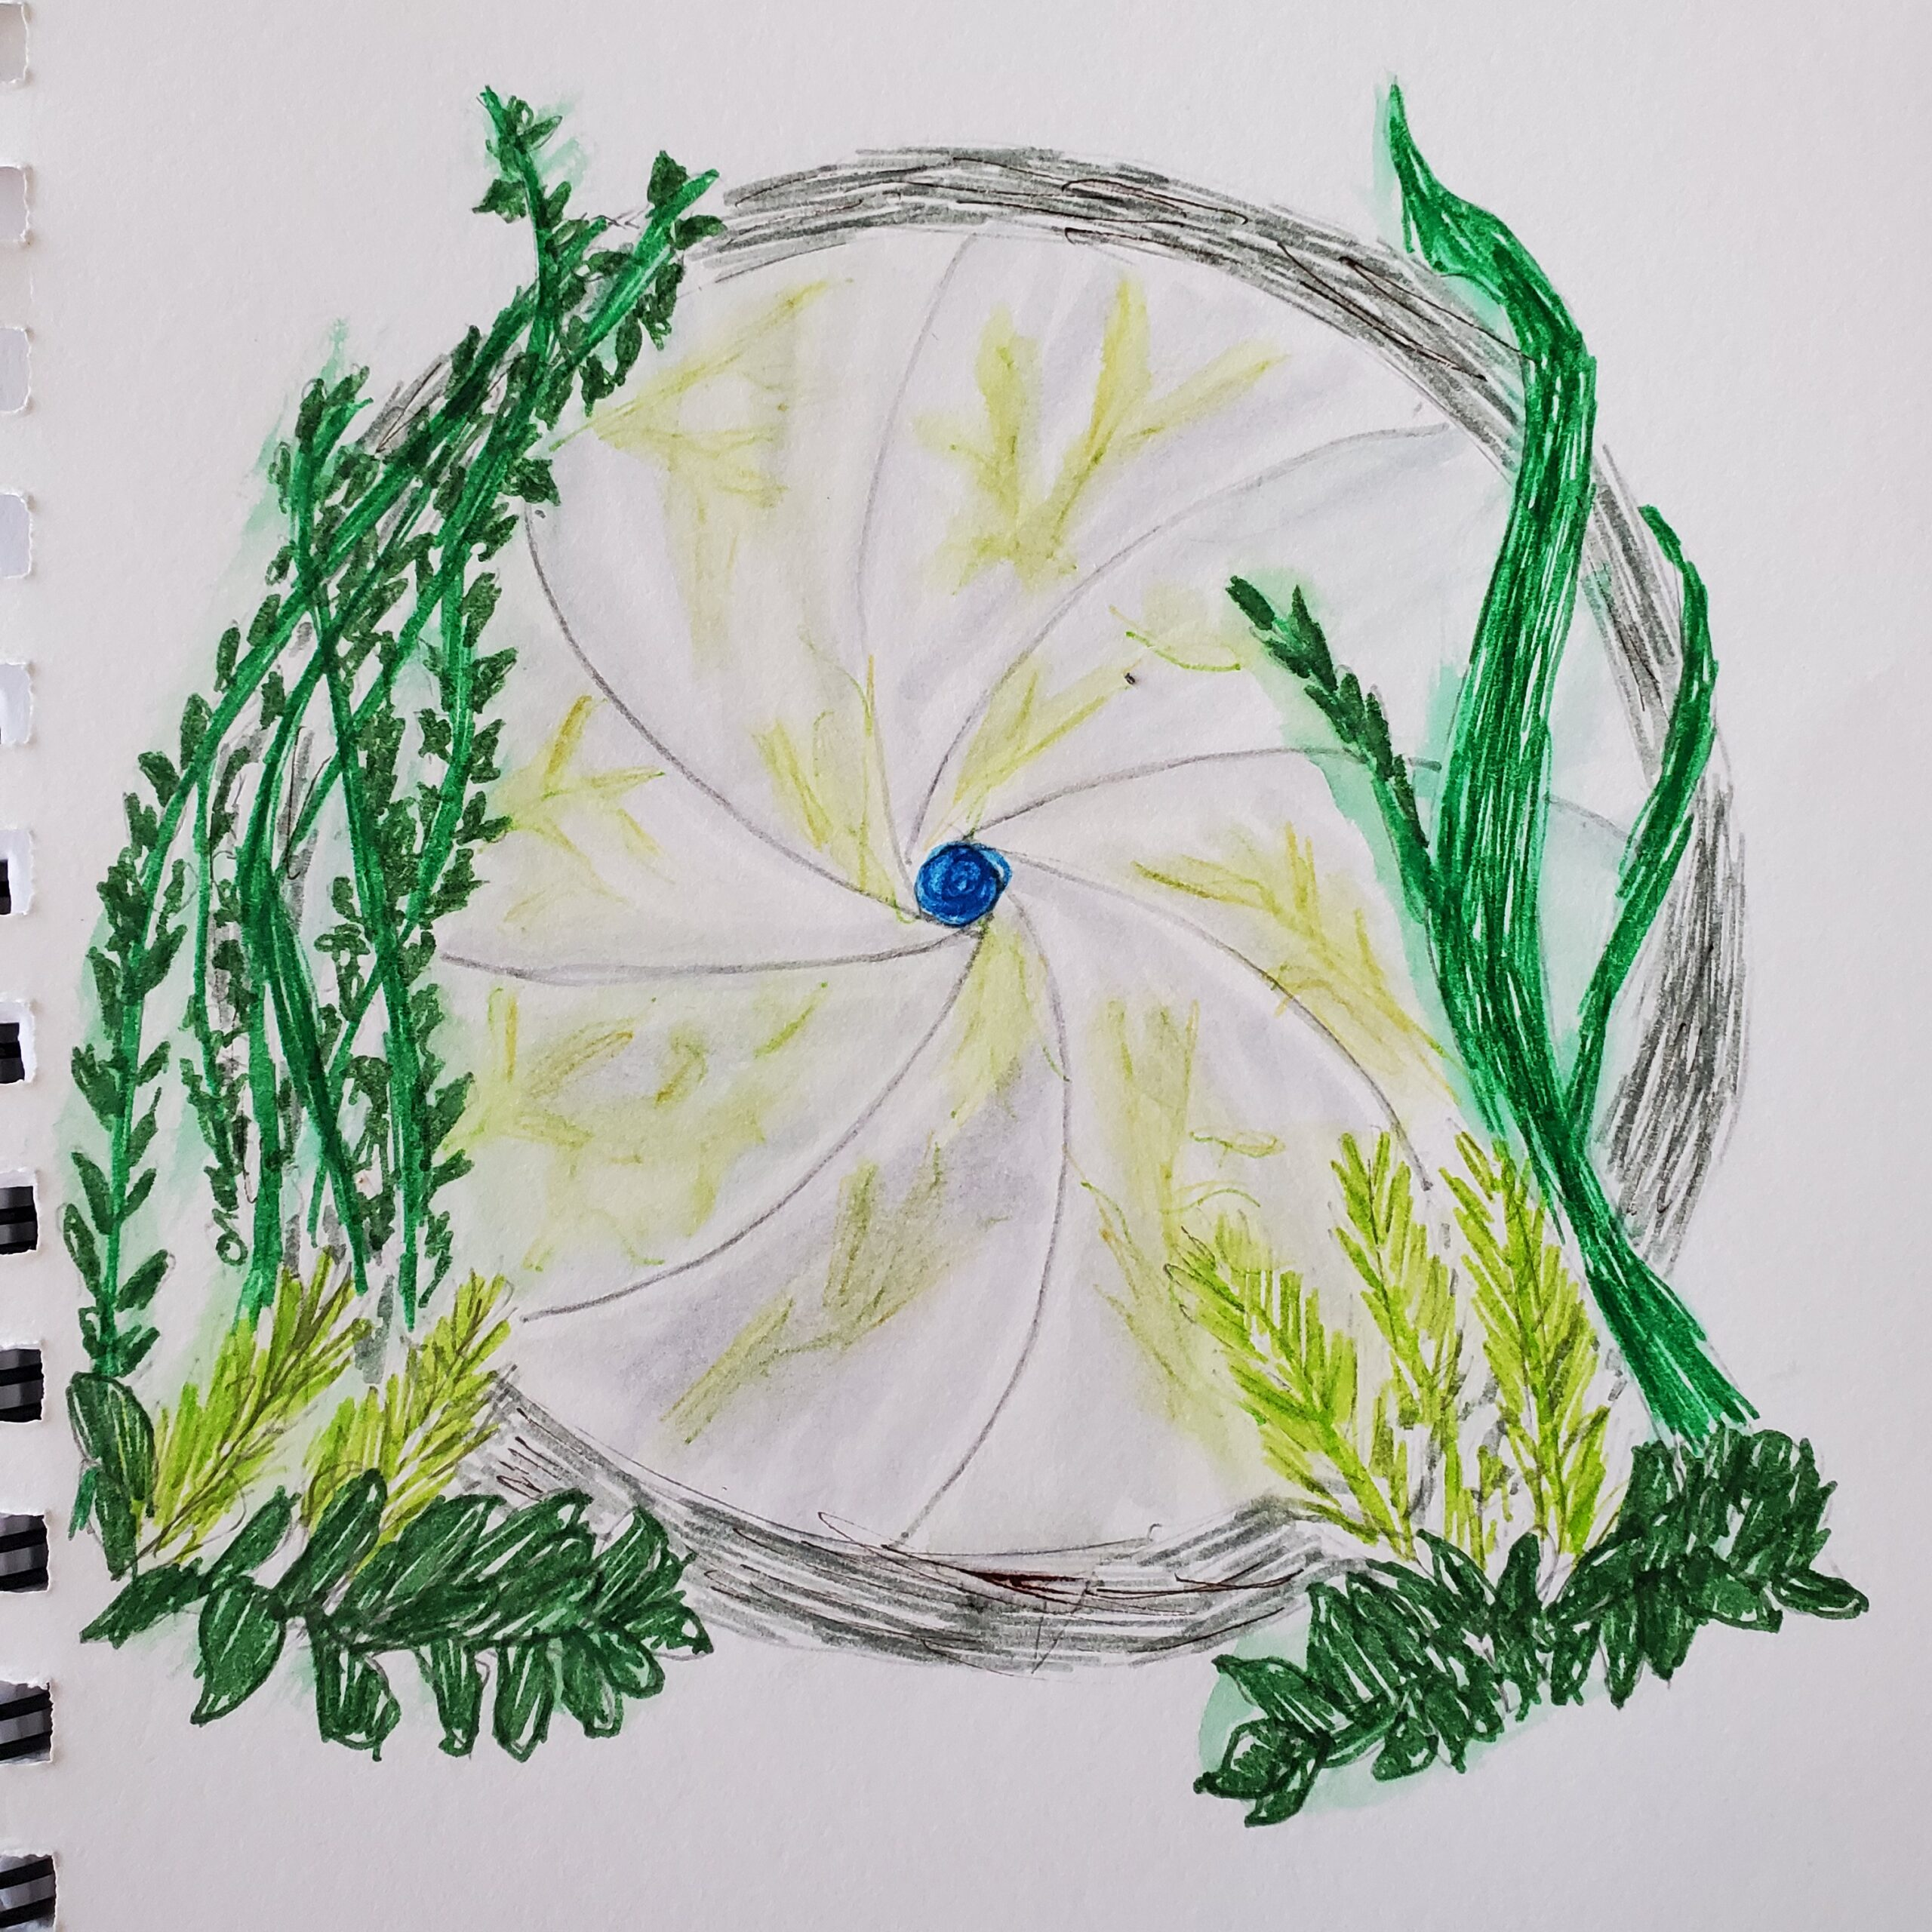 watercolor drawing of a portal, looking like a camera iris